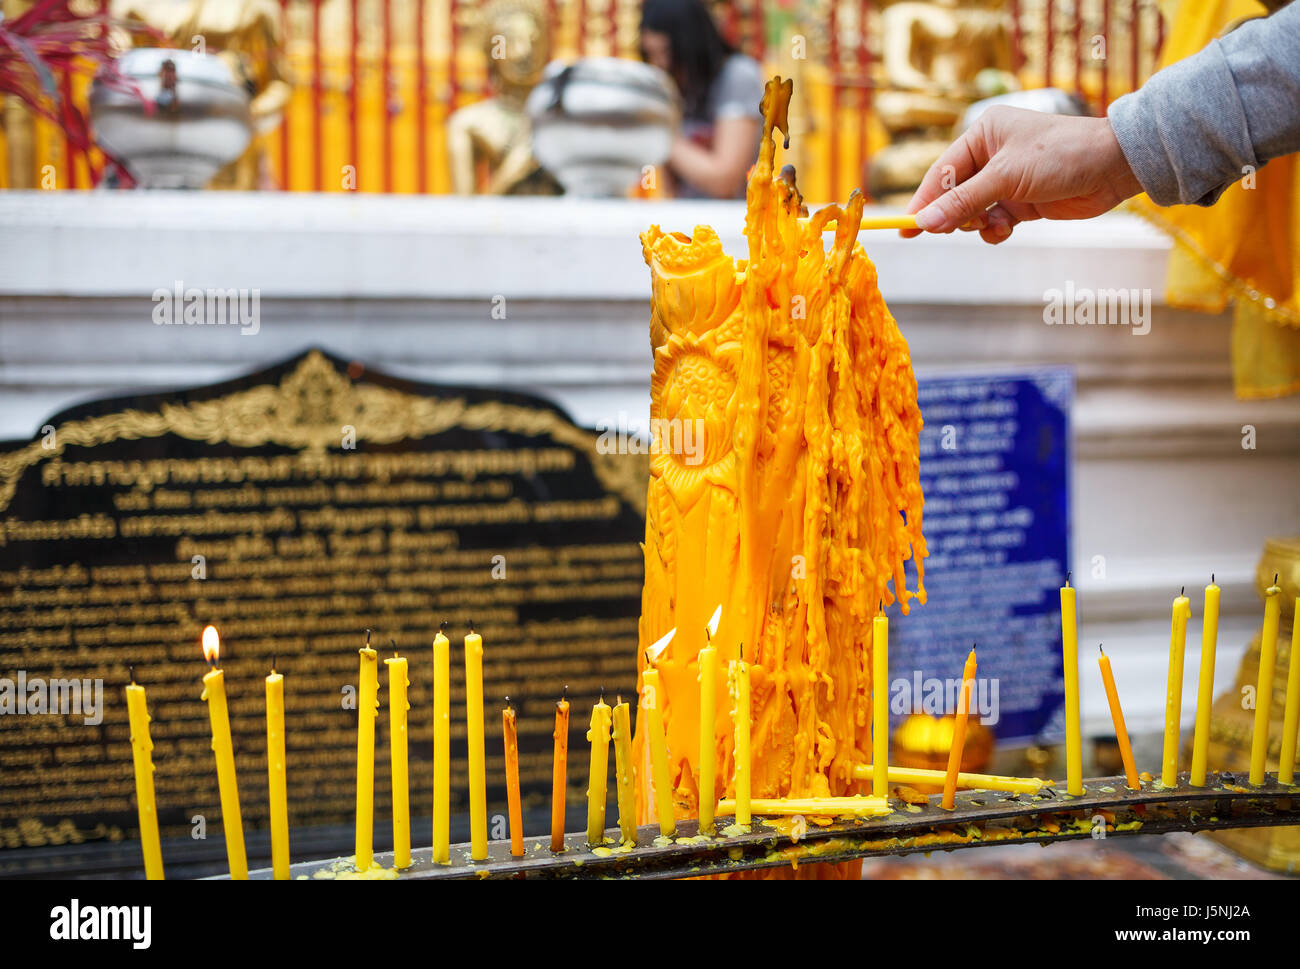 Hand with candle in Wat Doi Suthep Buddhist Temple in Ciang Mai, Thailand - Stock Image